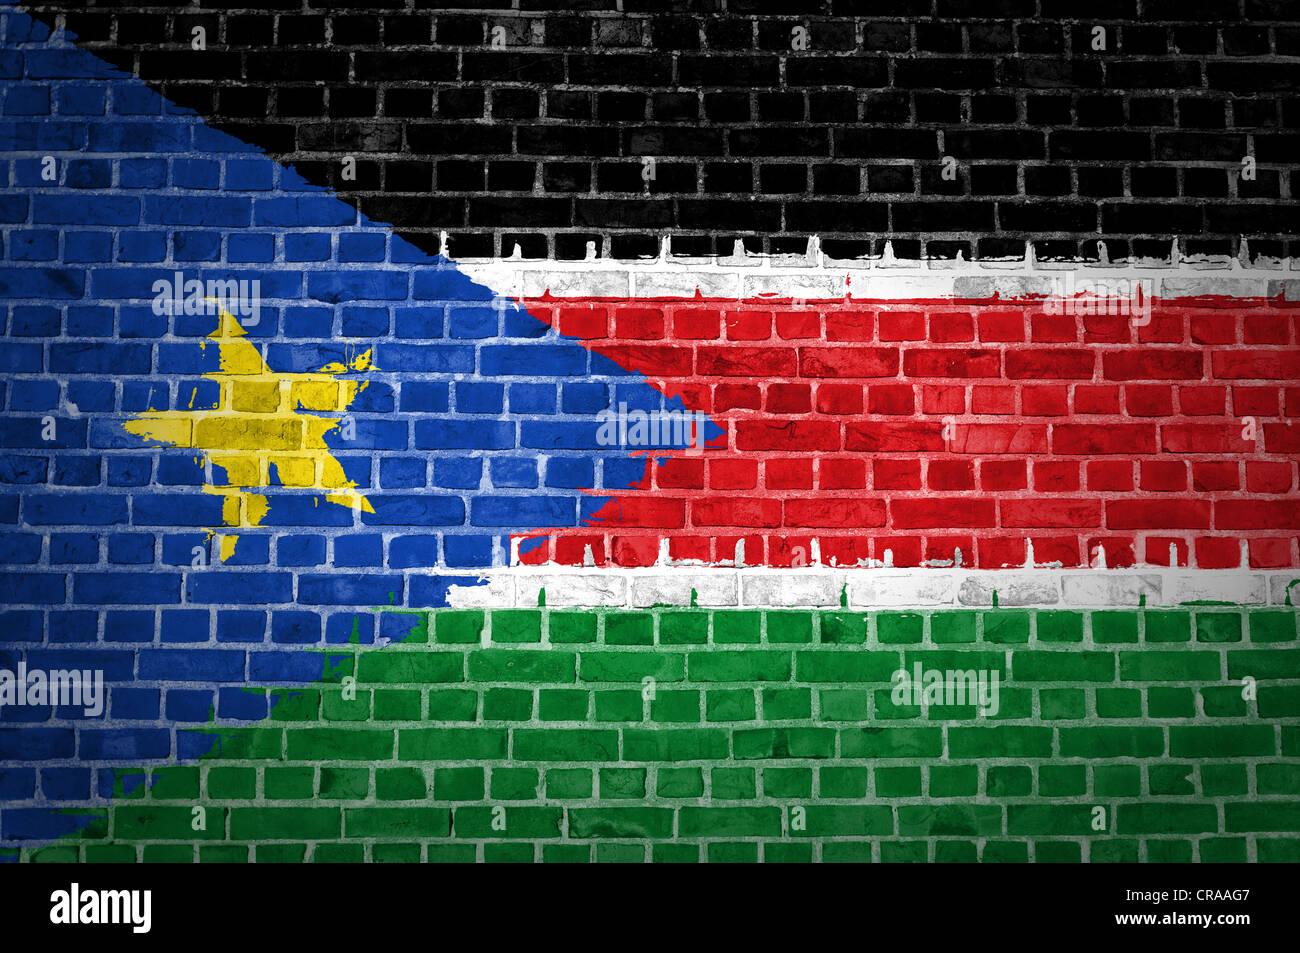 An image of the South Sudan flag painted on a brick wall in an urban location - Stock Image